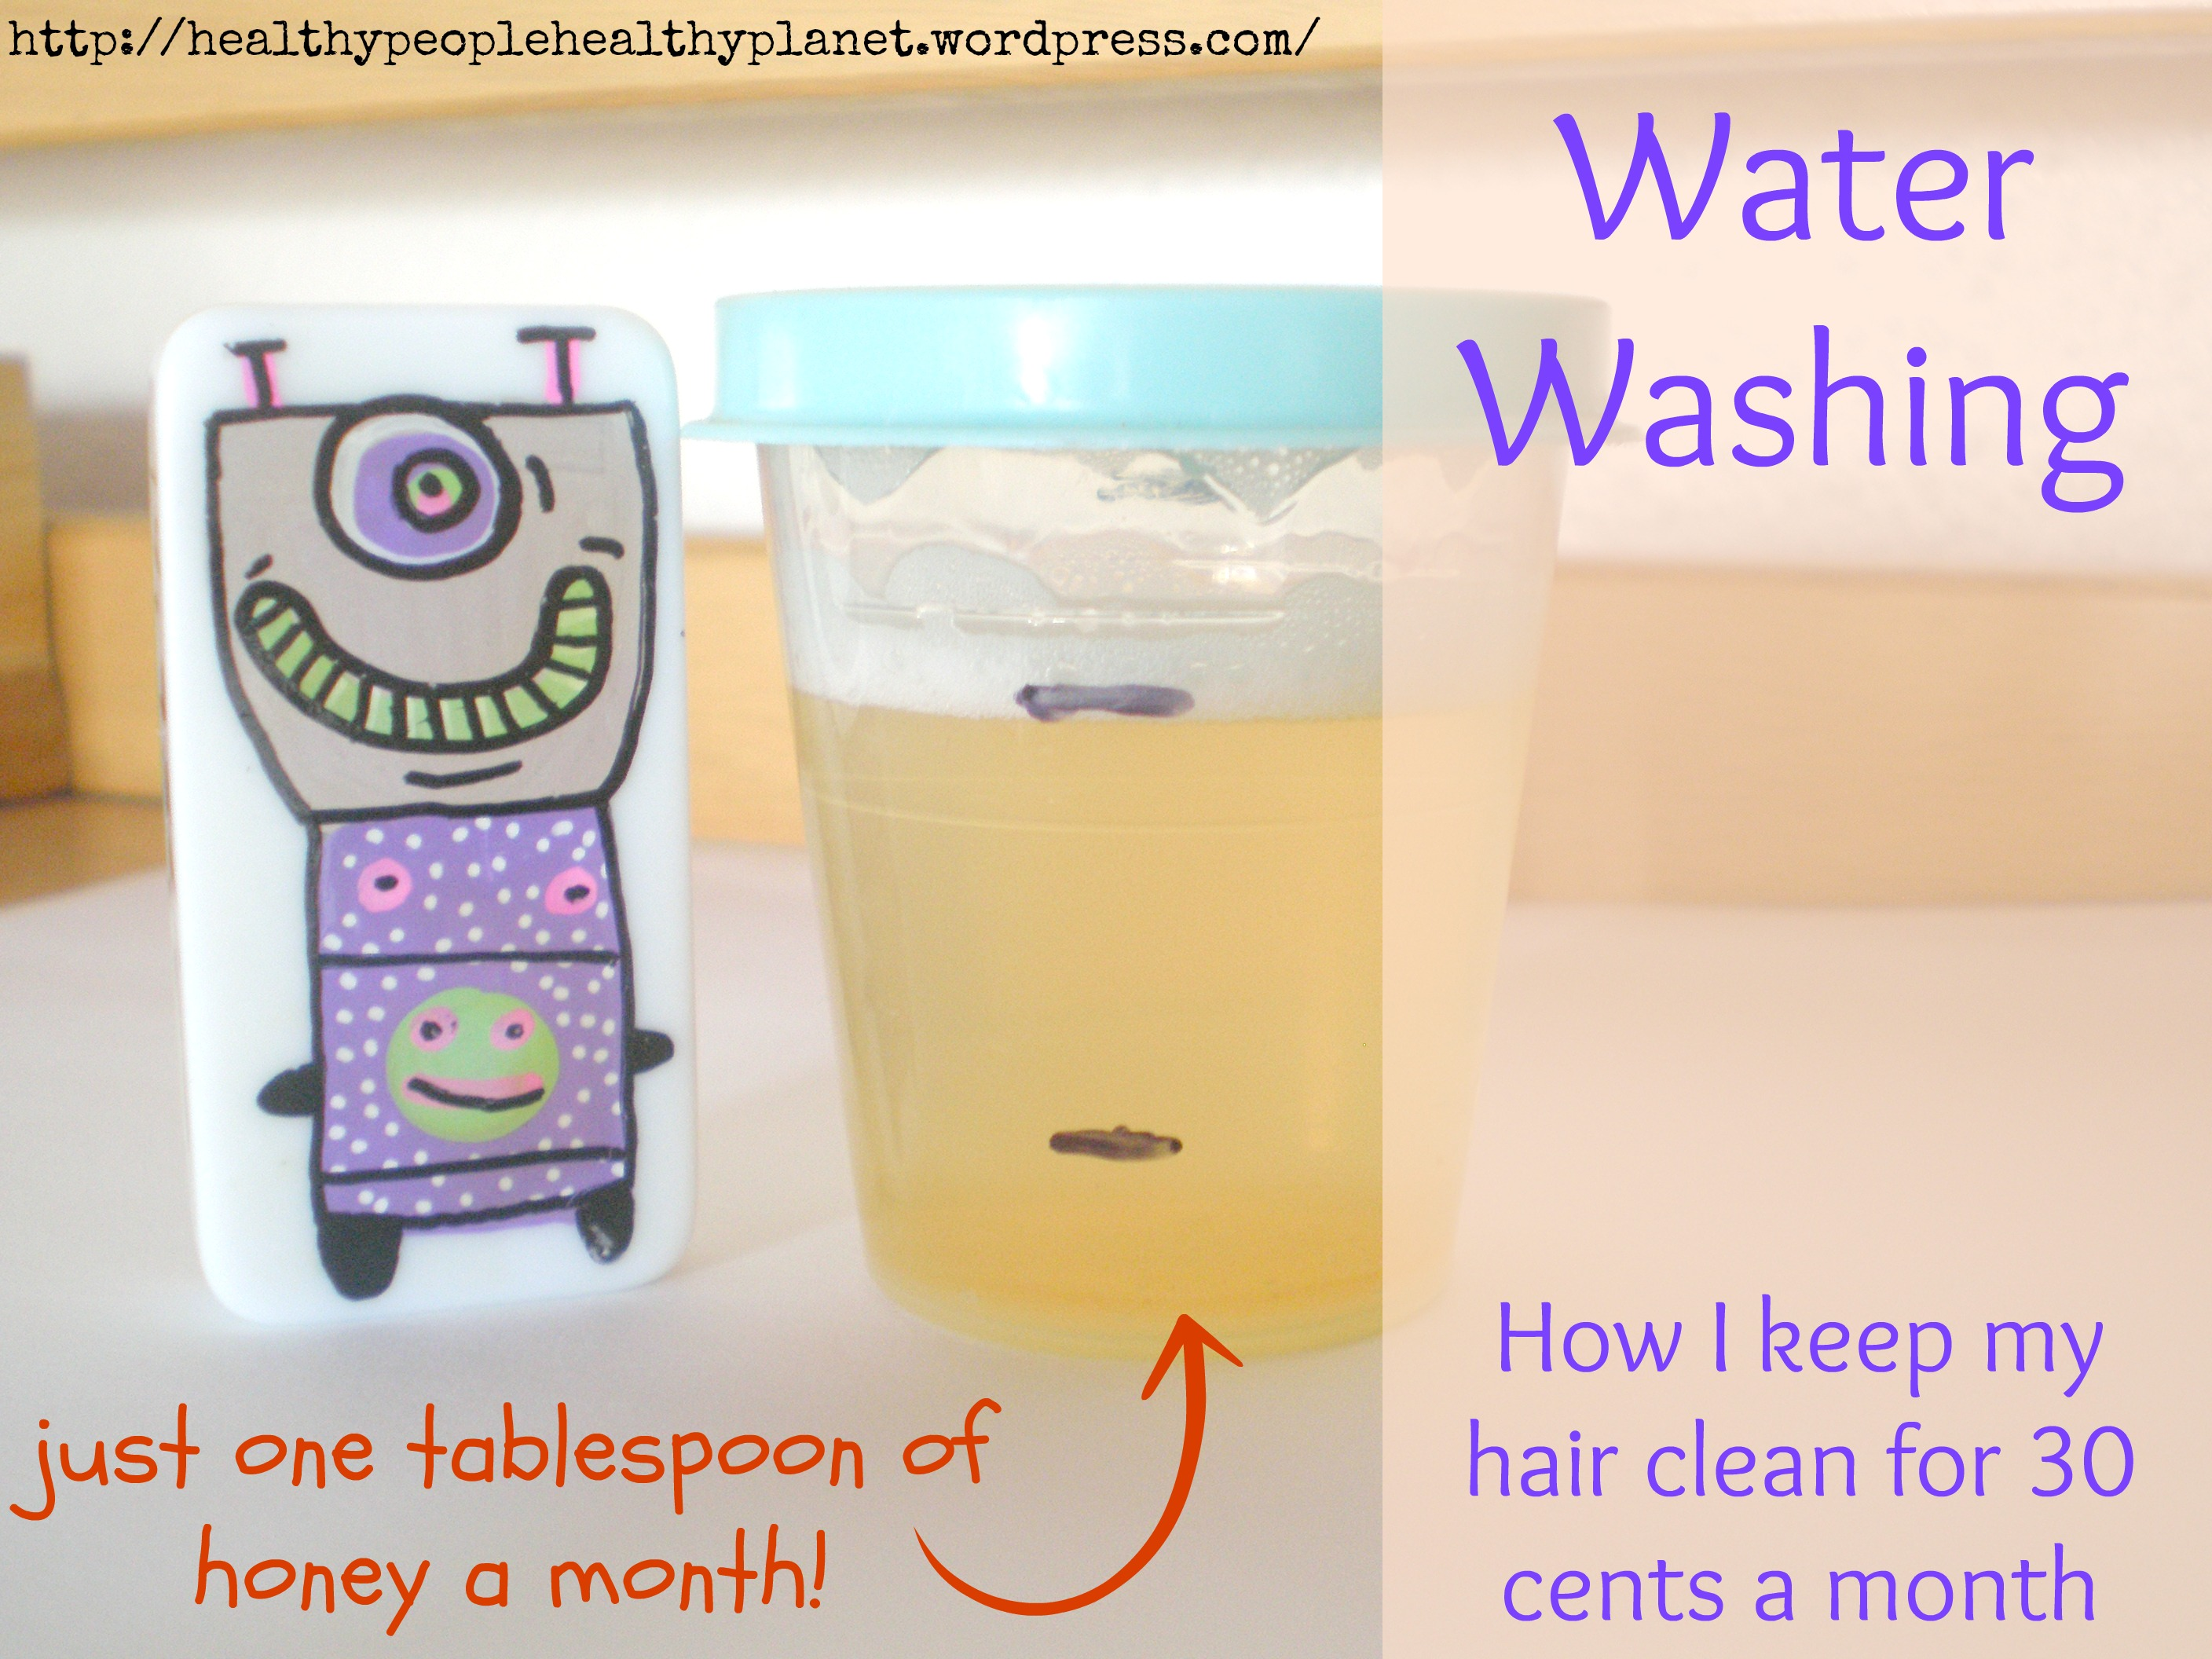 Water Washing - Learn to keep your hair clean for less than $4 a year!